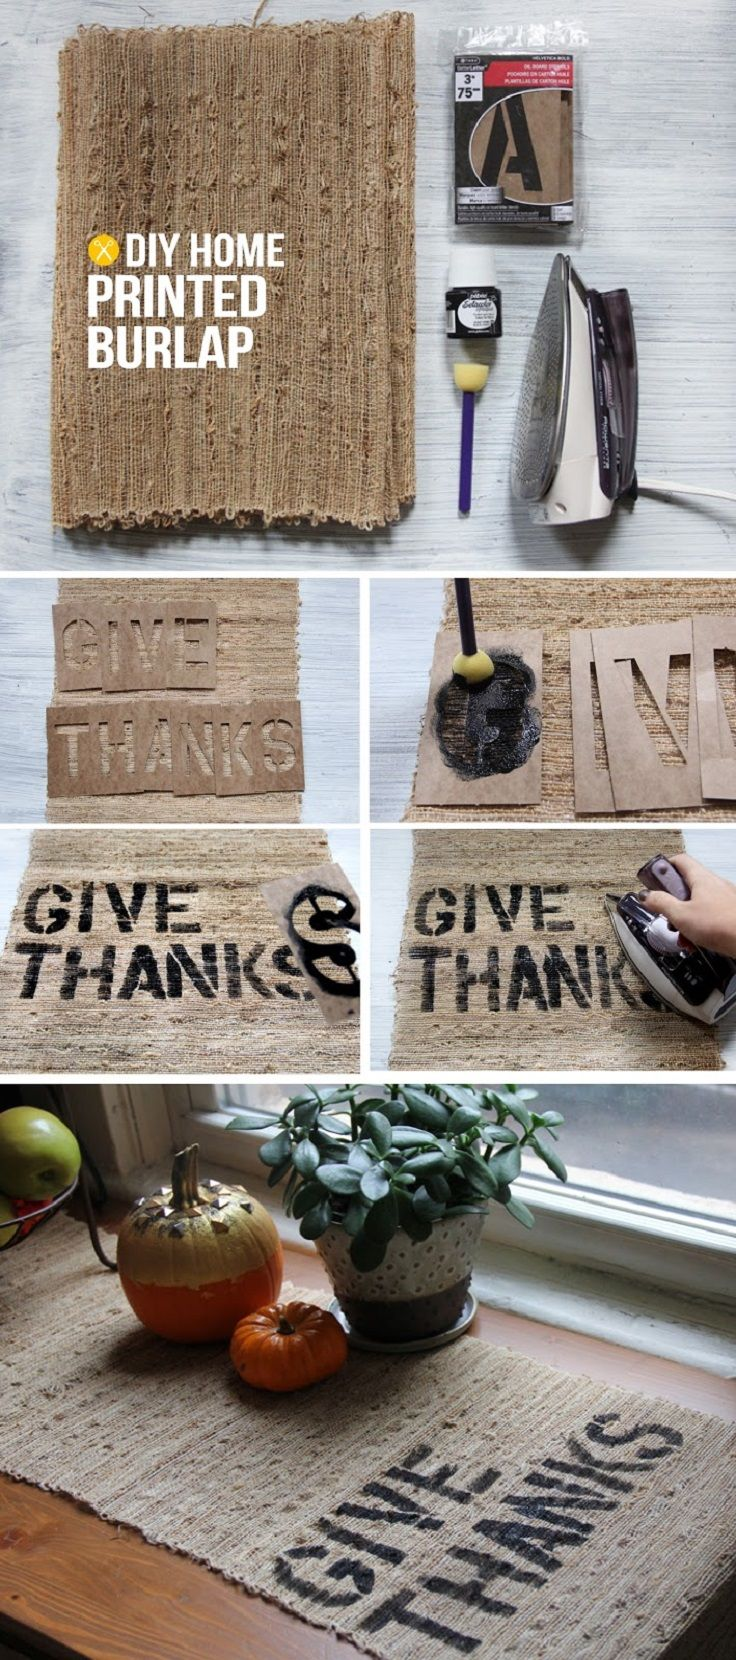 Printed Burlap DIY Table Runner - 17 Joyous Thanksgiving Decorations to Set the Mood for Holidays